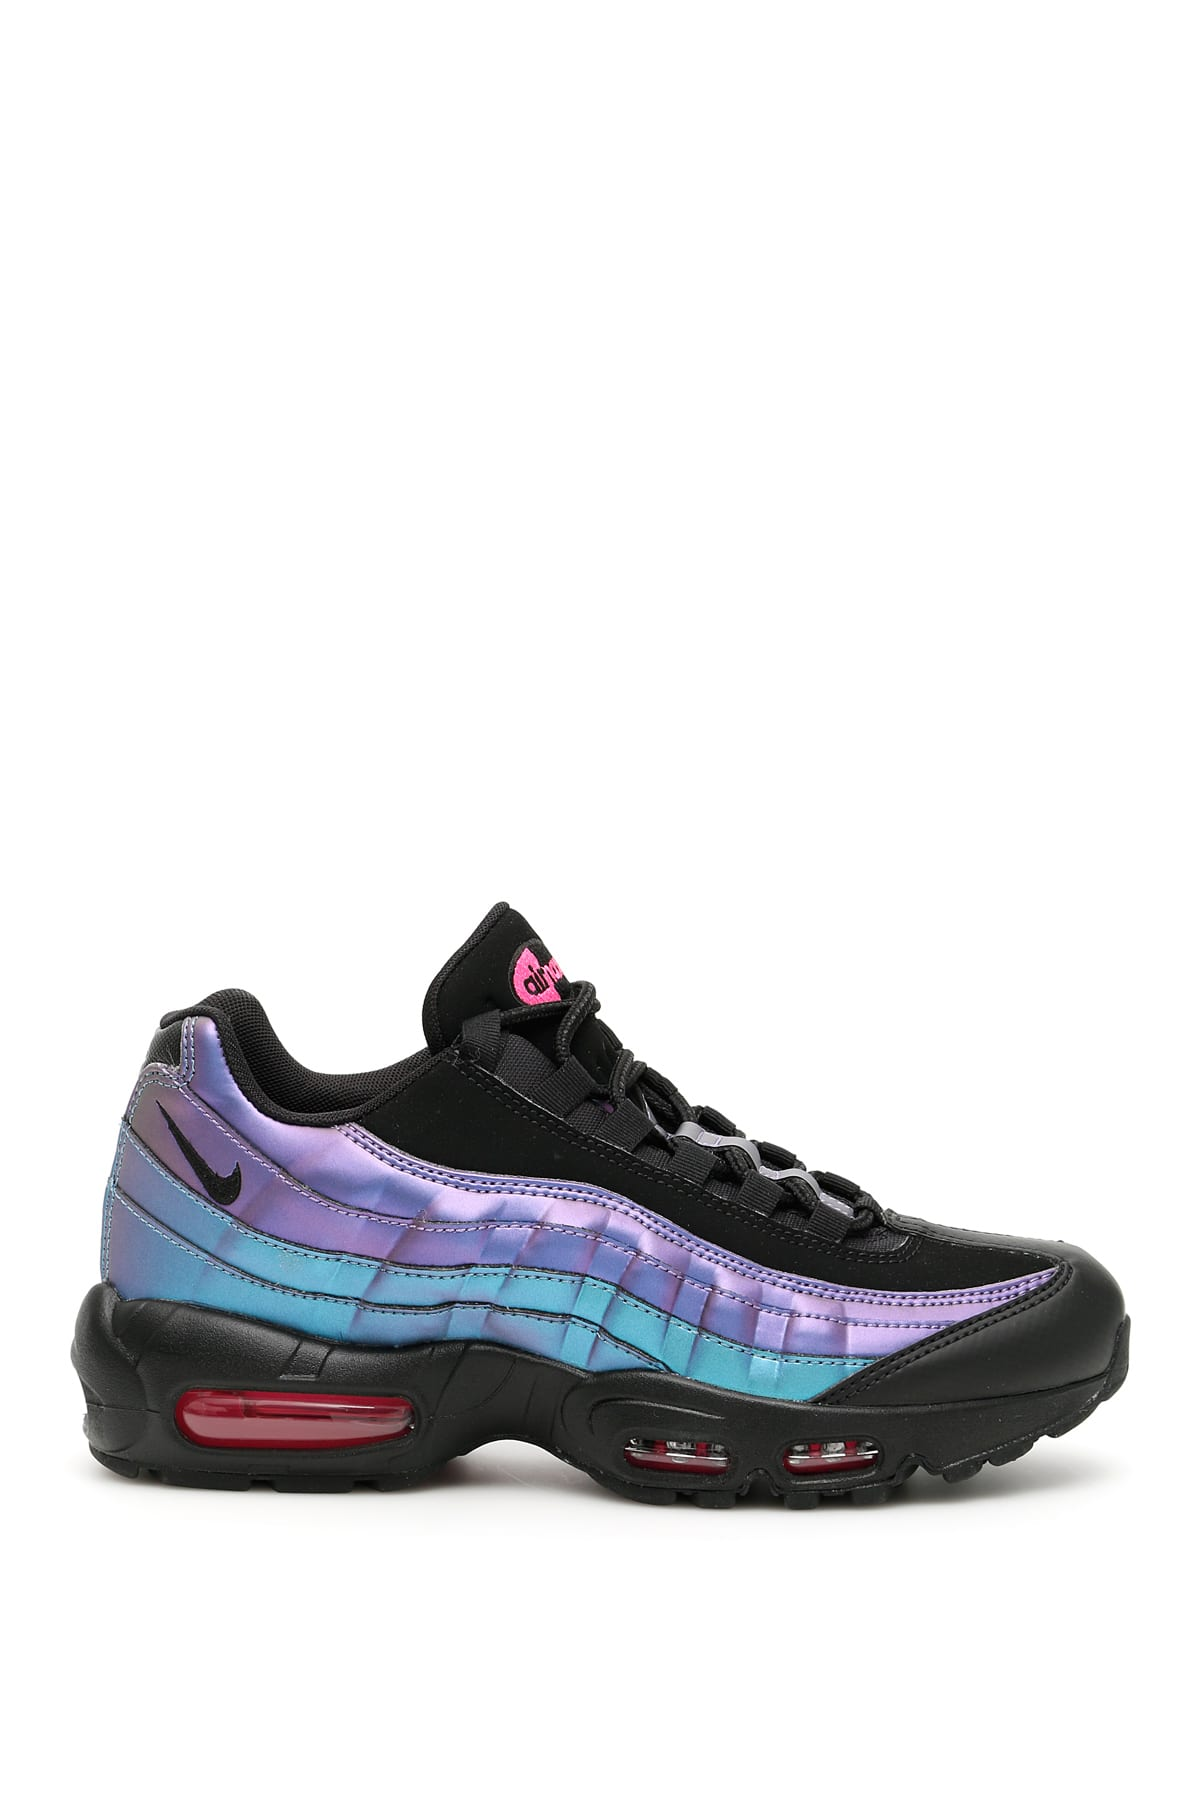 competitive price 7fa23 78882 Nike Air Max 95 Premium Sneakers